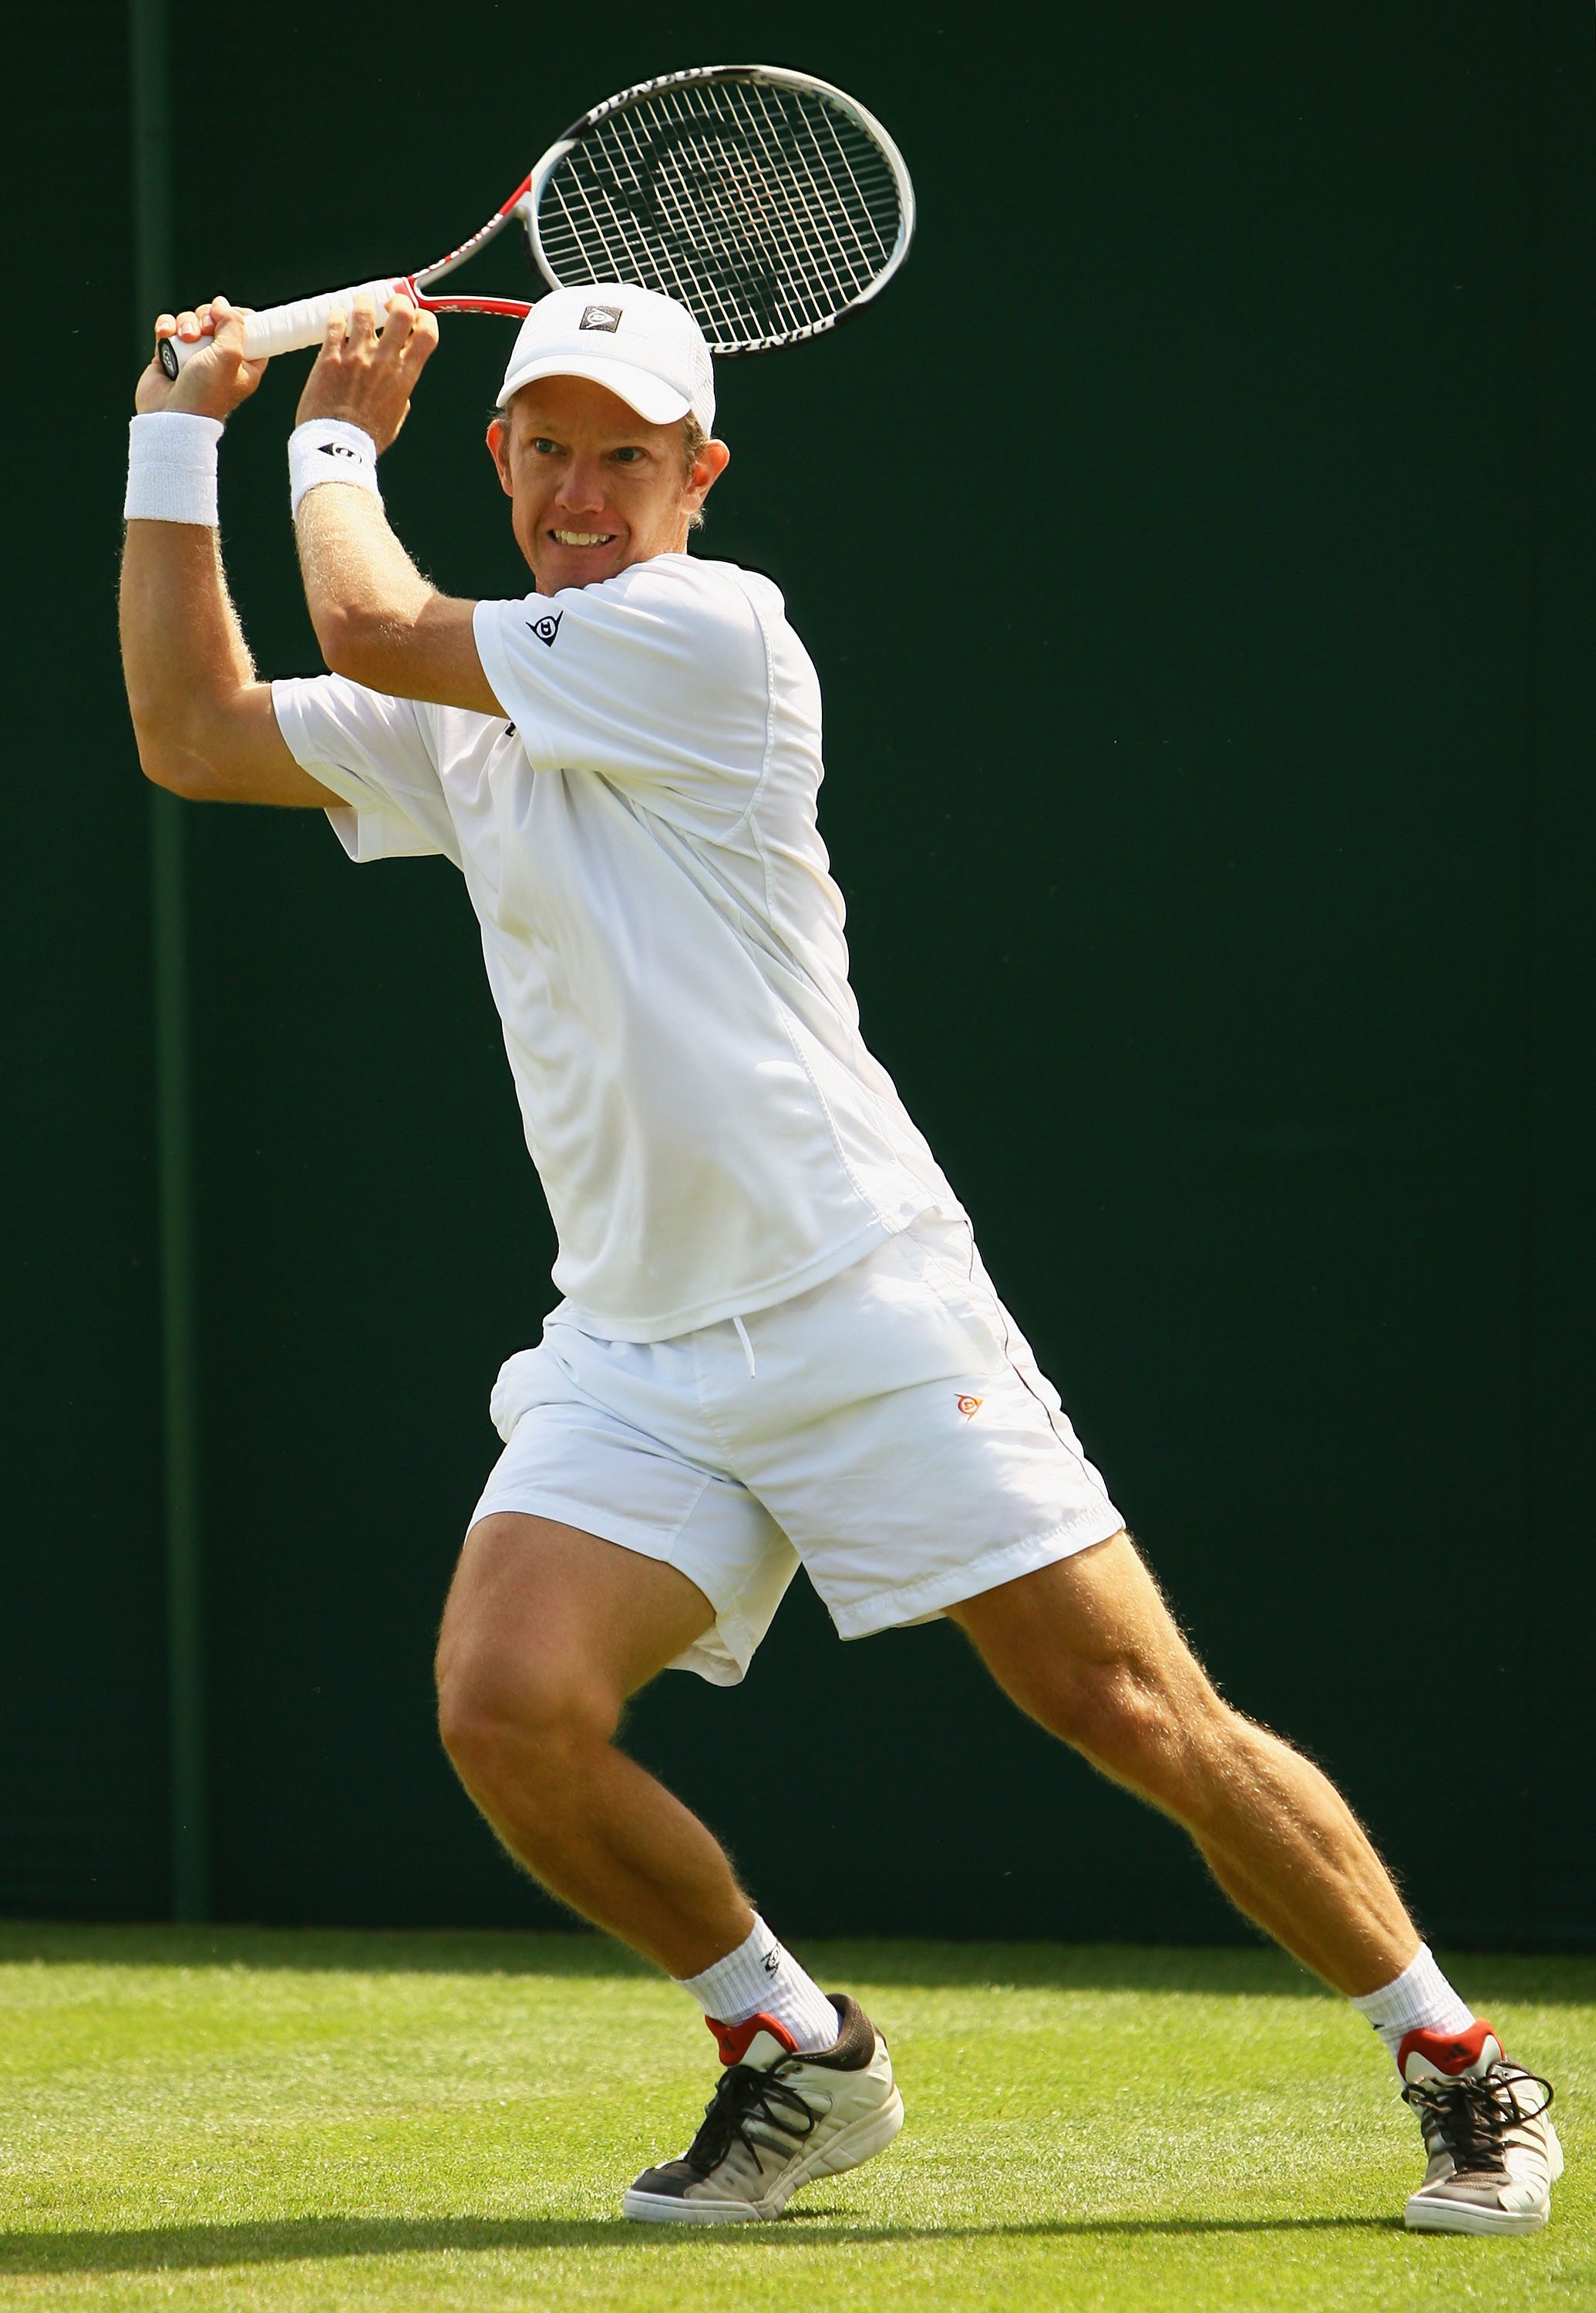 LONDON - JUNE 23:  Thomas Johansson of Sweden plays a forehand during the men's singles round one match against Vincent Spadea of United States on day one of the Wimbledon Lawn Tennis Championships at the All England Lawn Tennis and Croquet Club on June 2